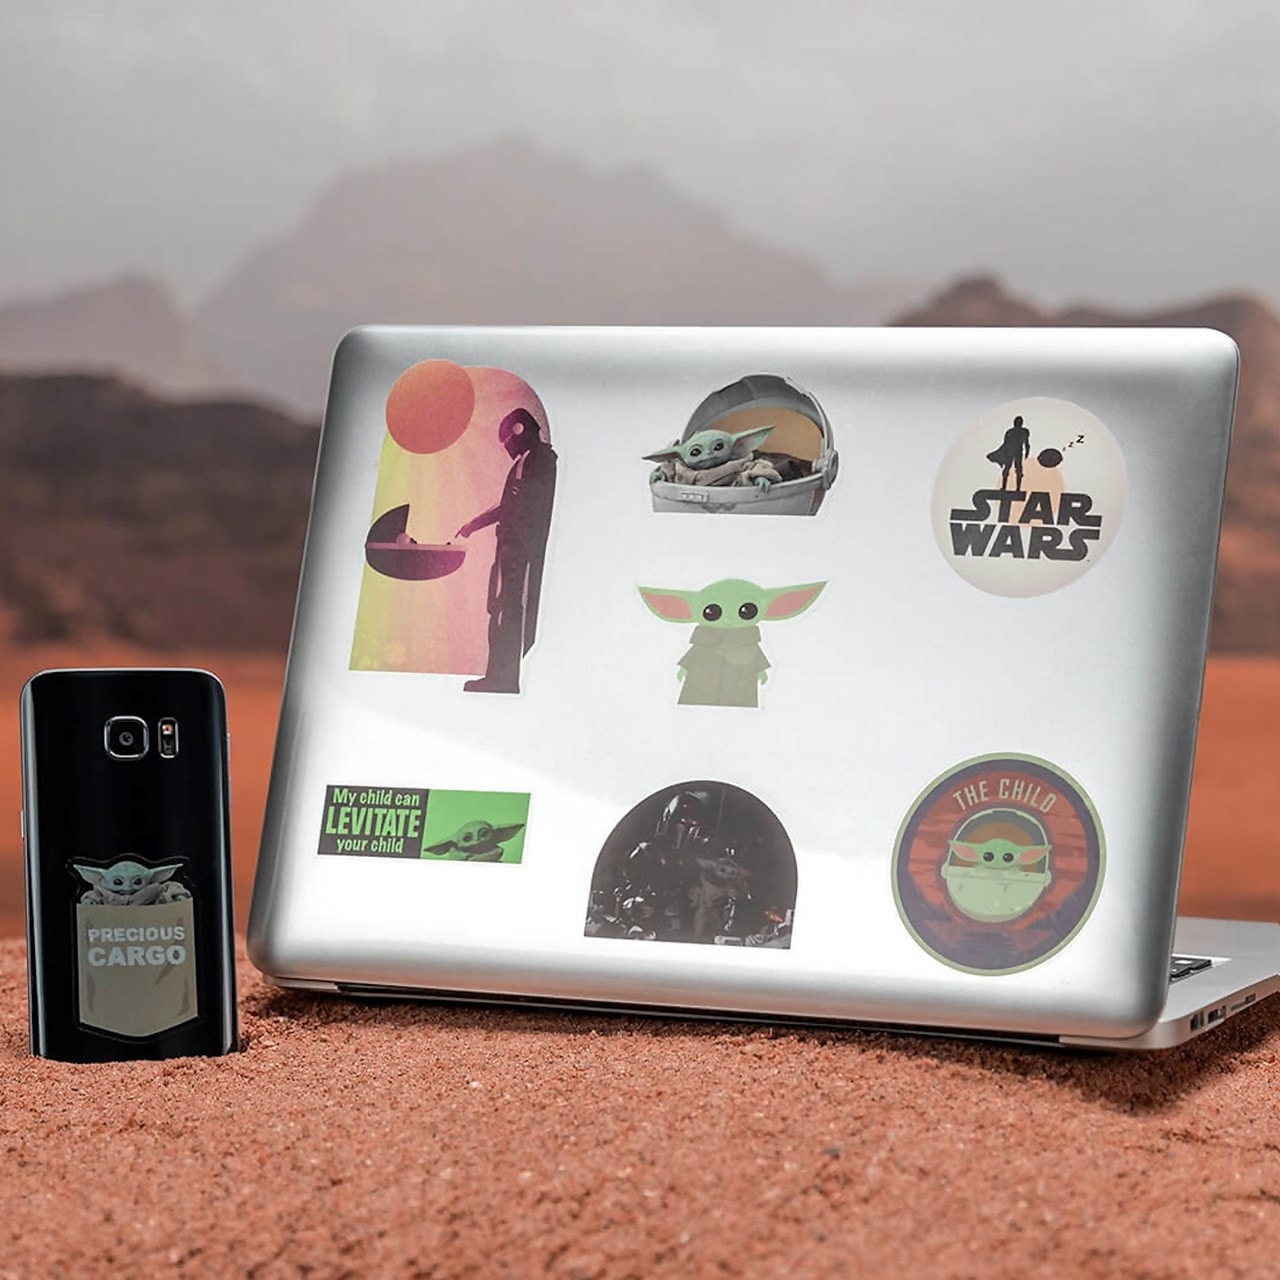 The Child: The Mandalorian: Star Wars Gadget Decals - 1